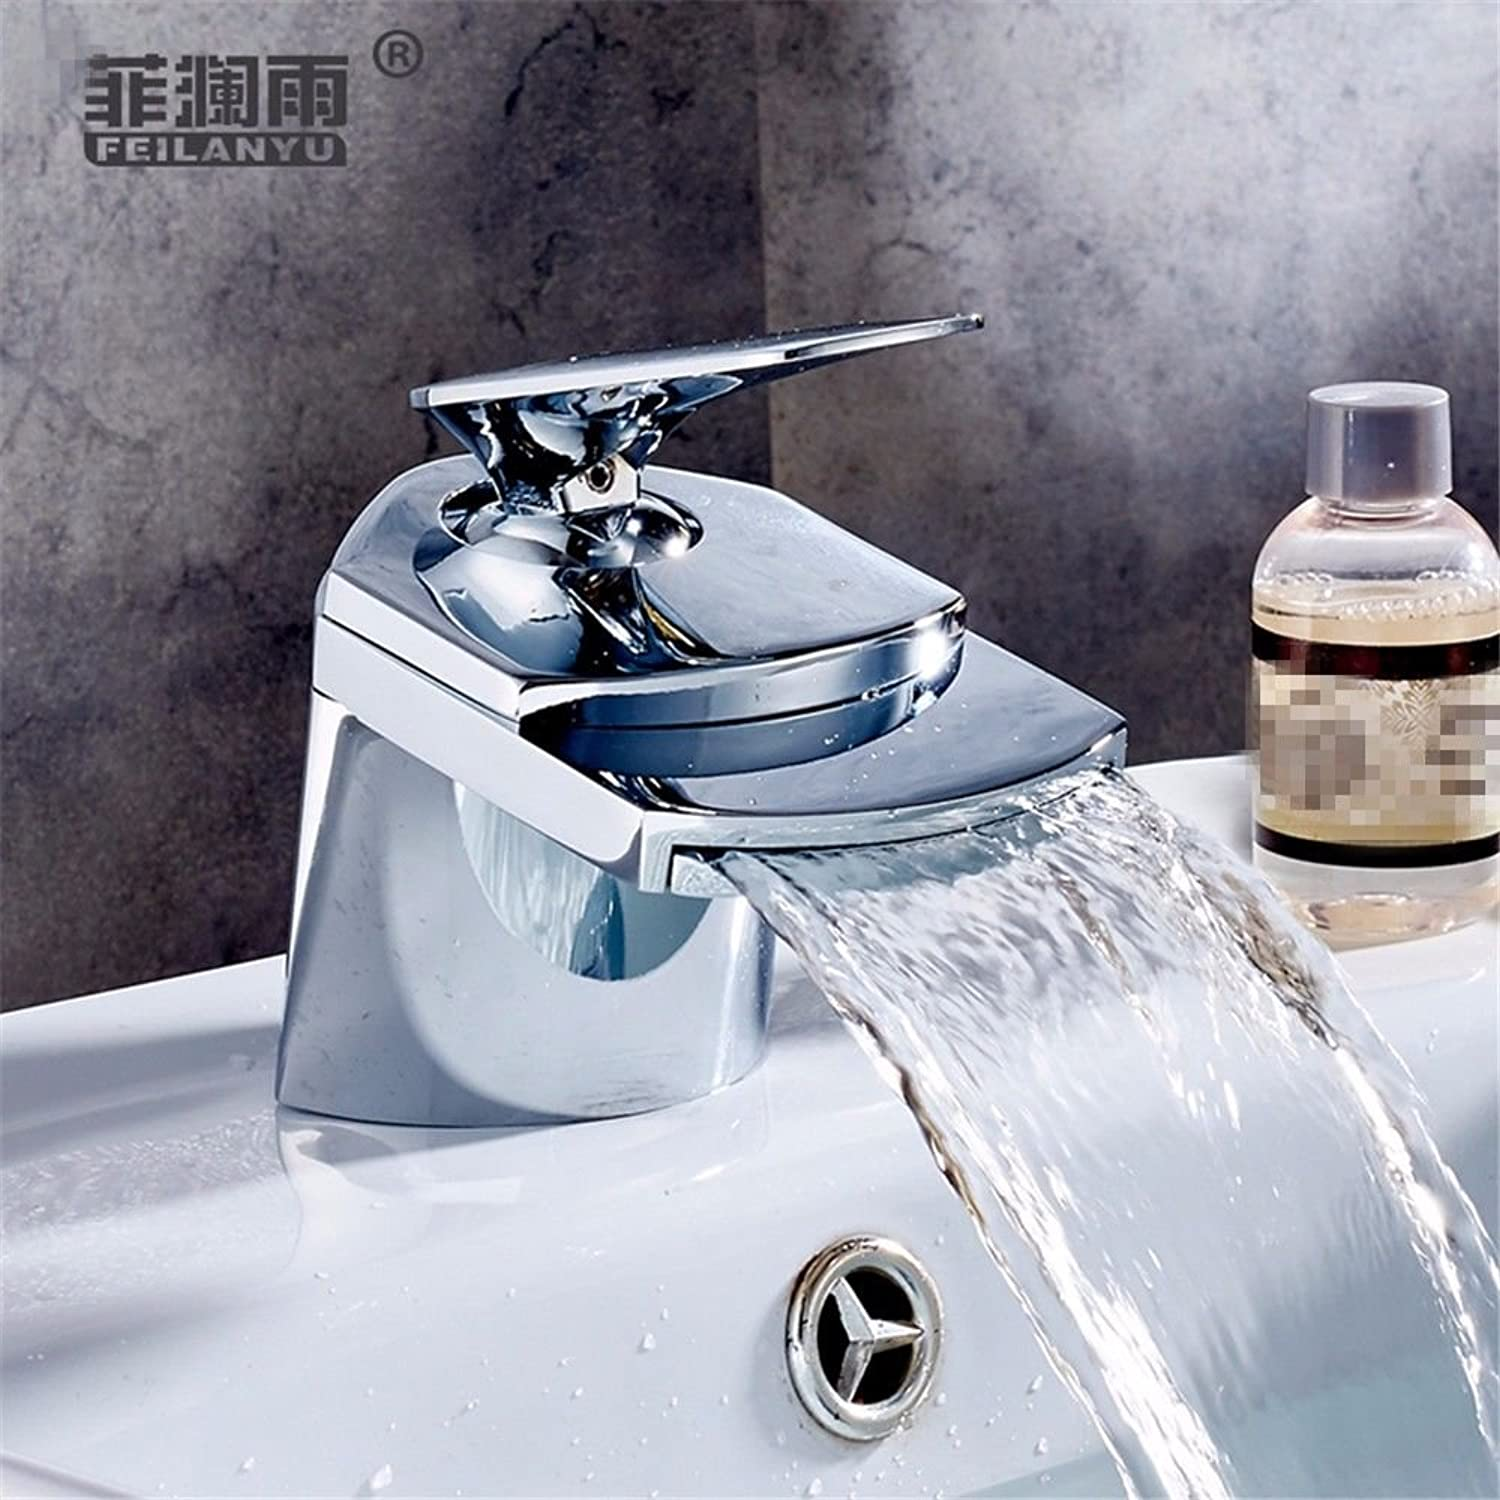 Lalaky Taps Faucet Kitchen Mixer Sink Waterfall Bathroom Mixer Basin Mixer Tap for Kitchen Bathroom and Washroom Chrome Stainless Steel Copper Waterfall Single Hole Hot and Cold